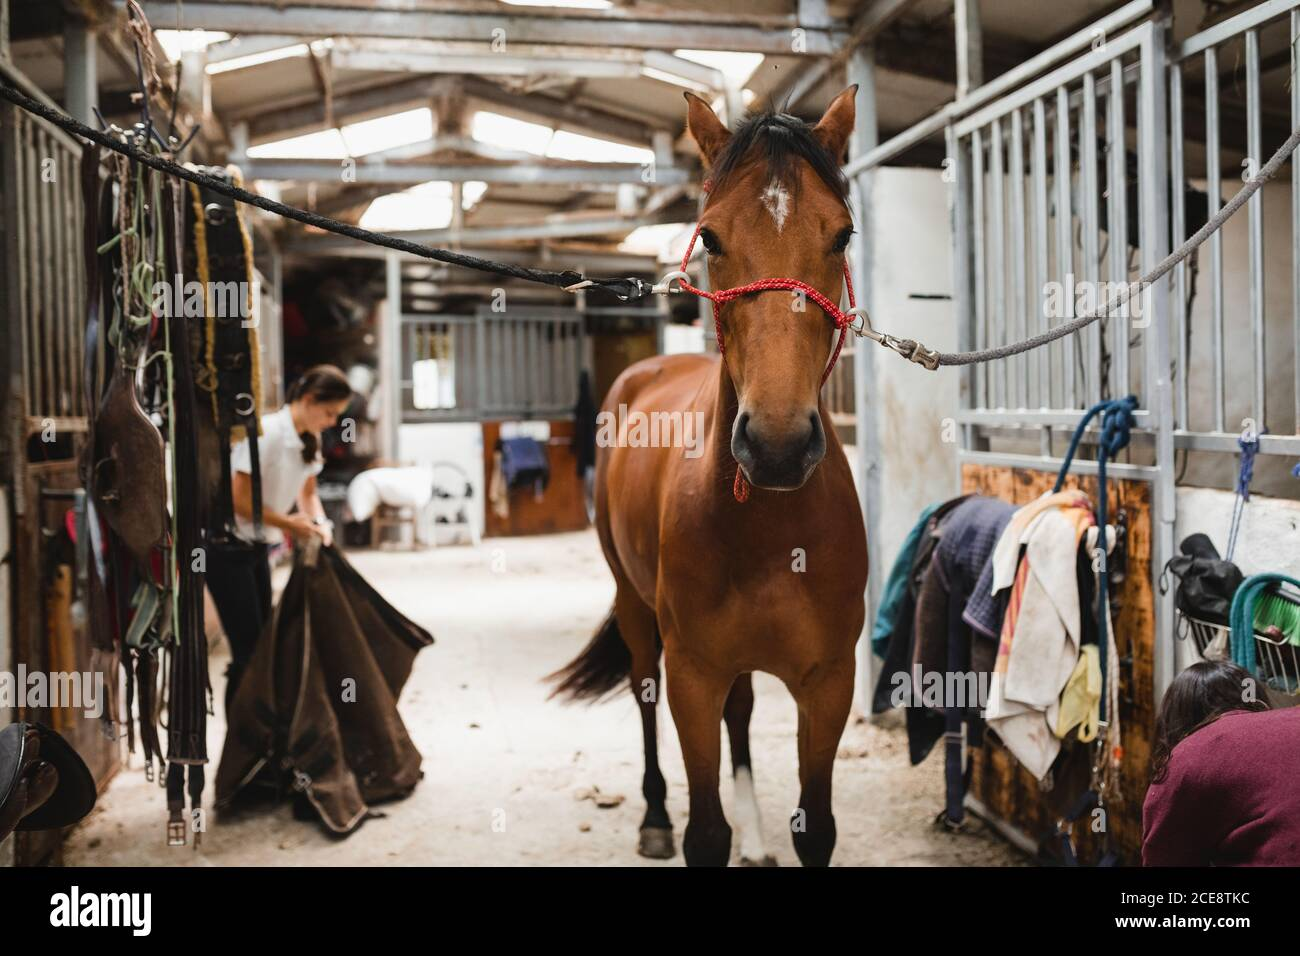 Cute Chestnut Horse In Bridle Standing In Shabby Barn On Ranch And Looking At Camera Stock Photo Alamy